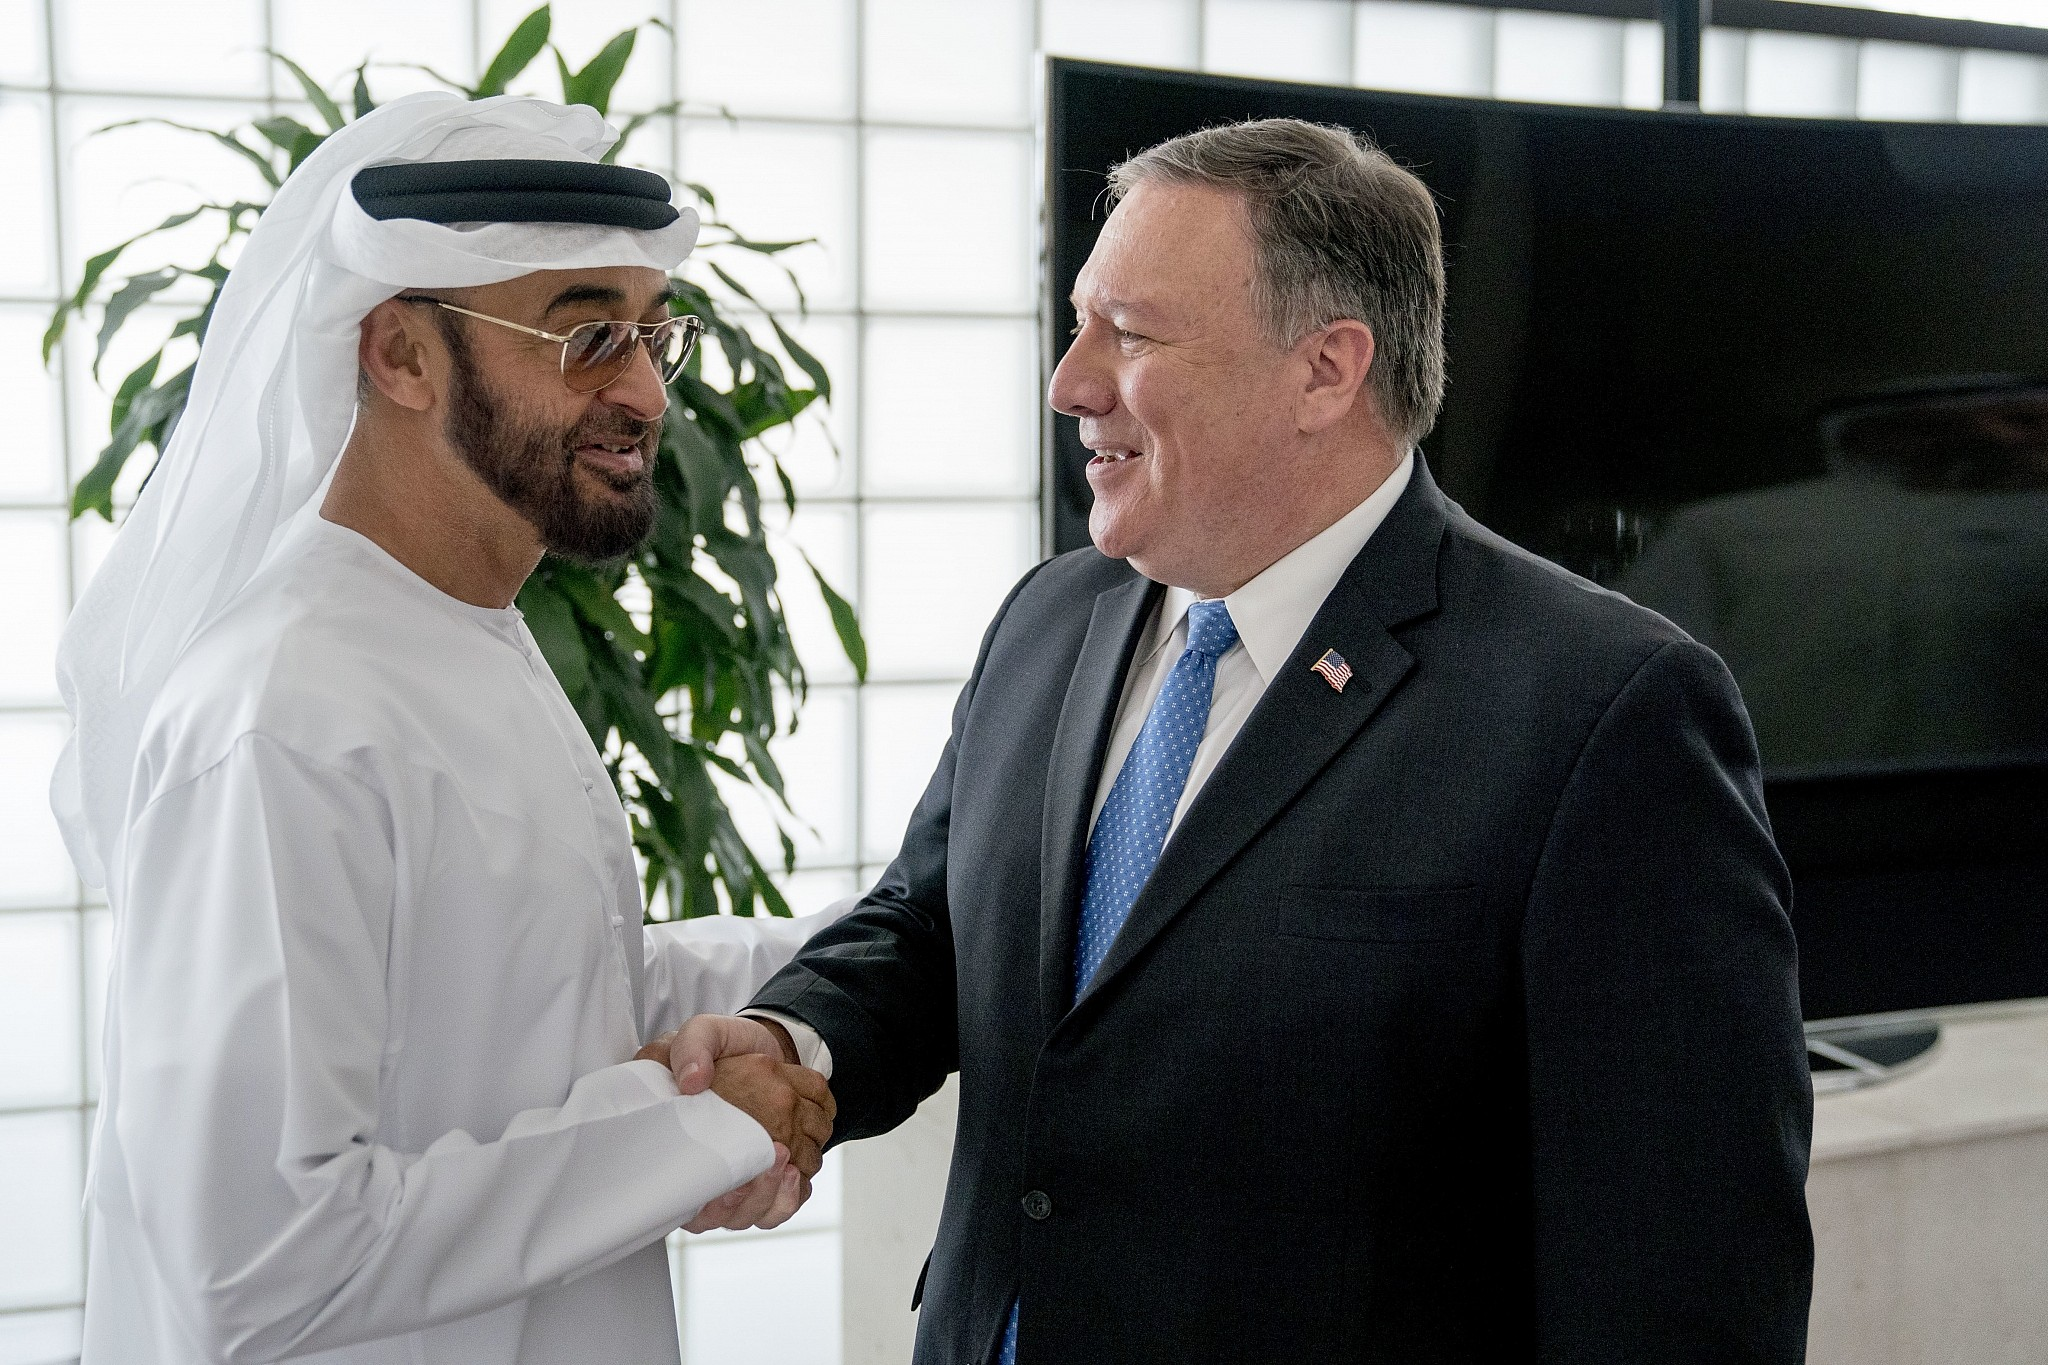 Pompeo talks tough on Iran while visiting the Emirates